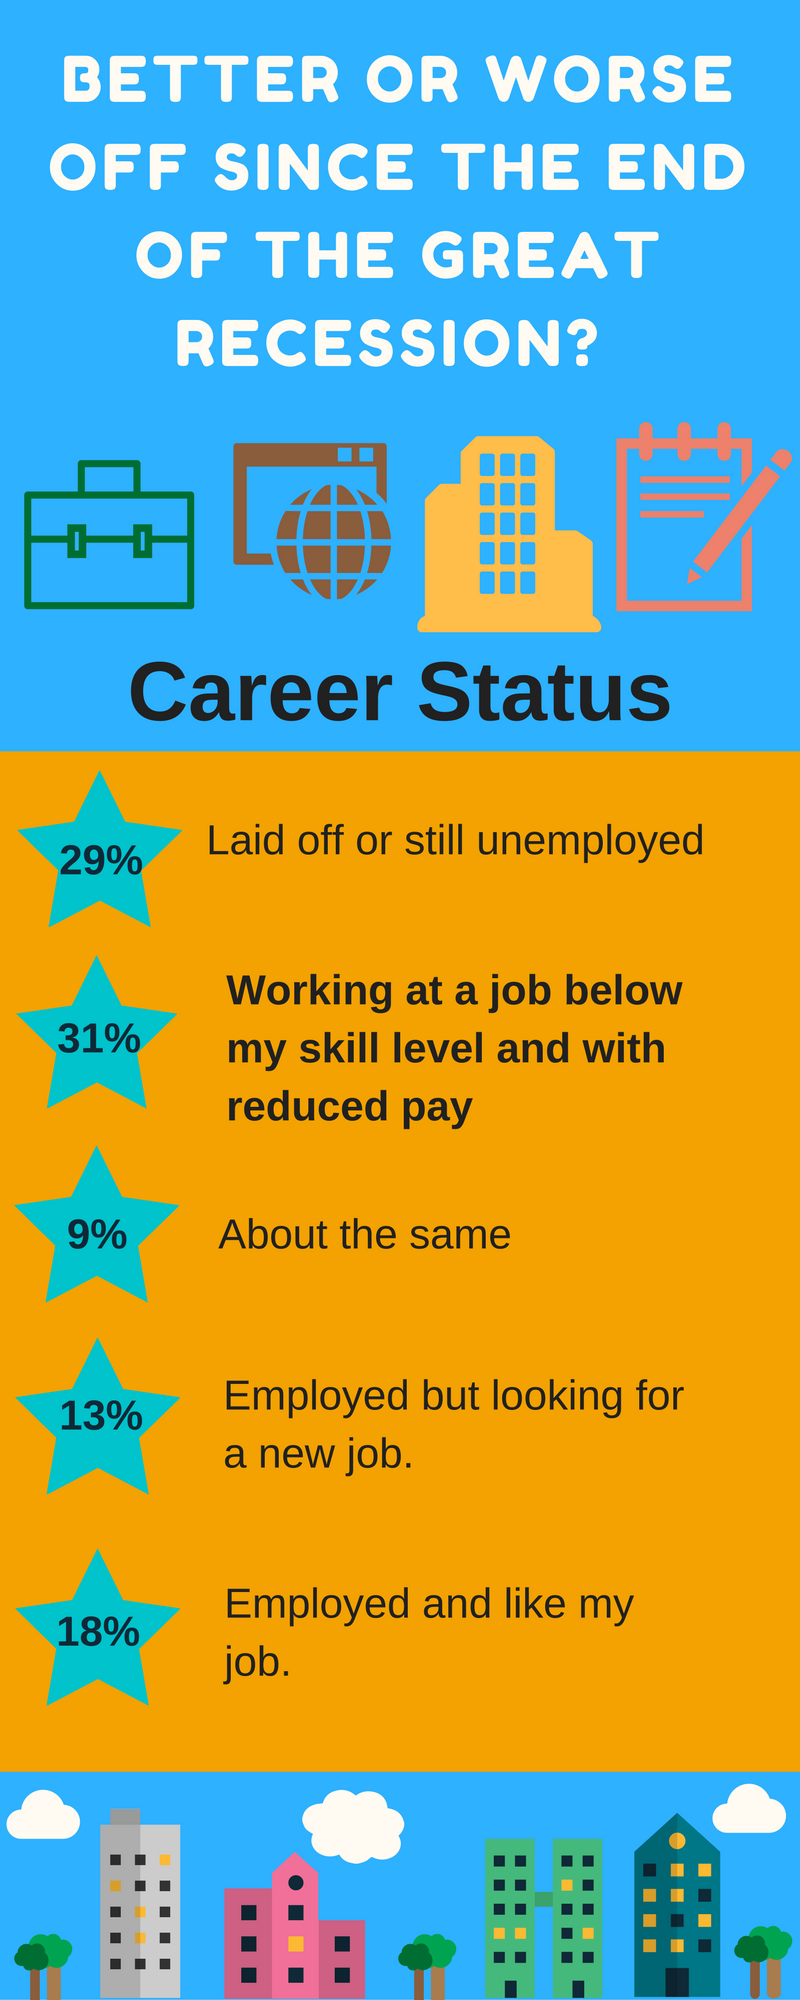 Better or Worse Off Career Status Elizabeth Rabaey